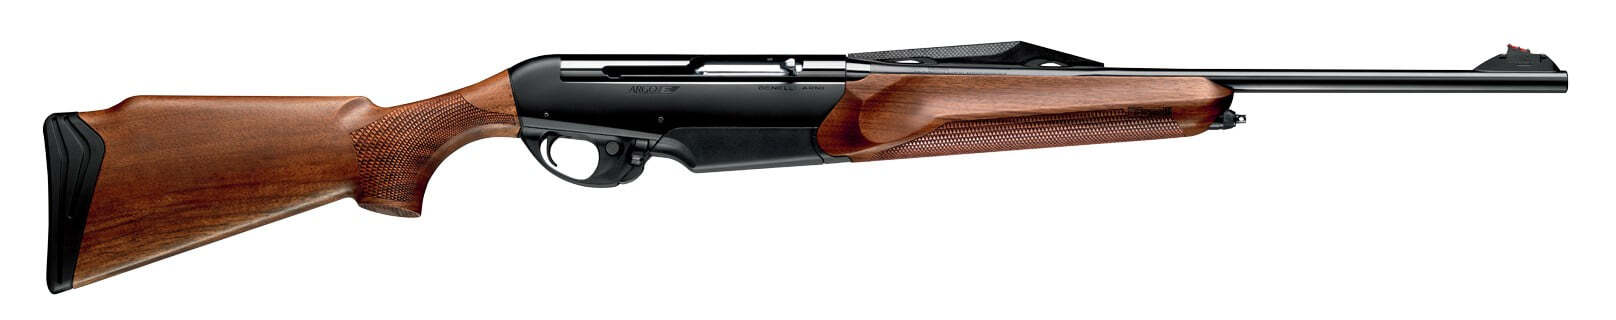 BE108-1 Carabine de battue semi-auto Benelli Argo Endurance - BE108